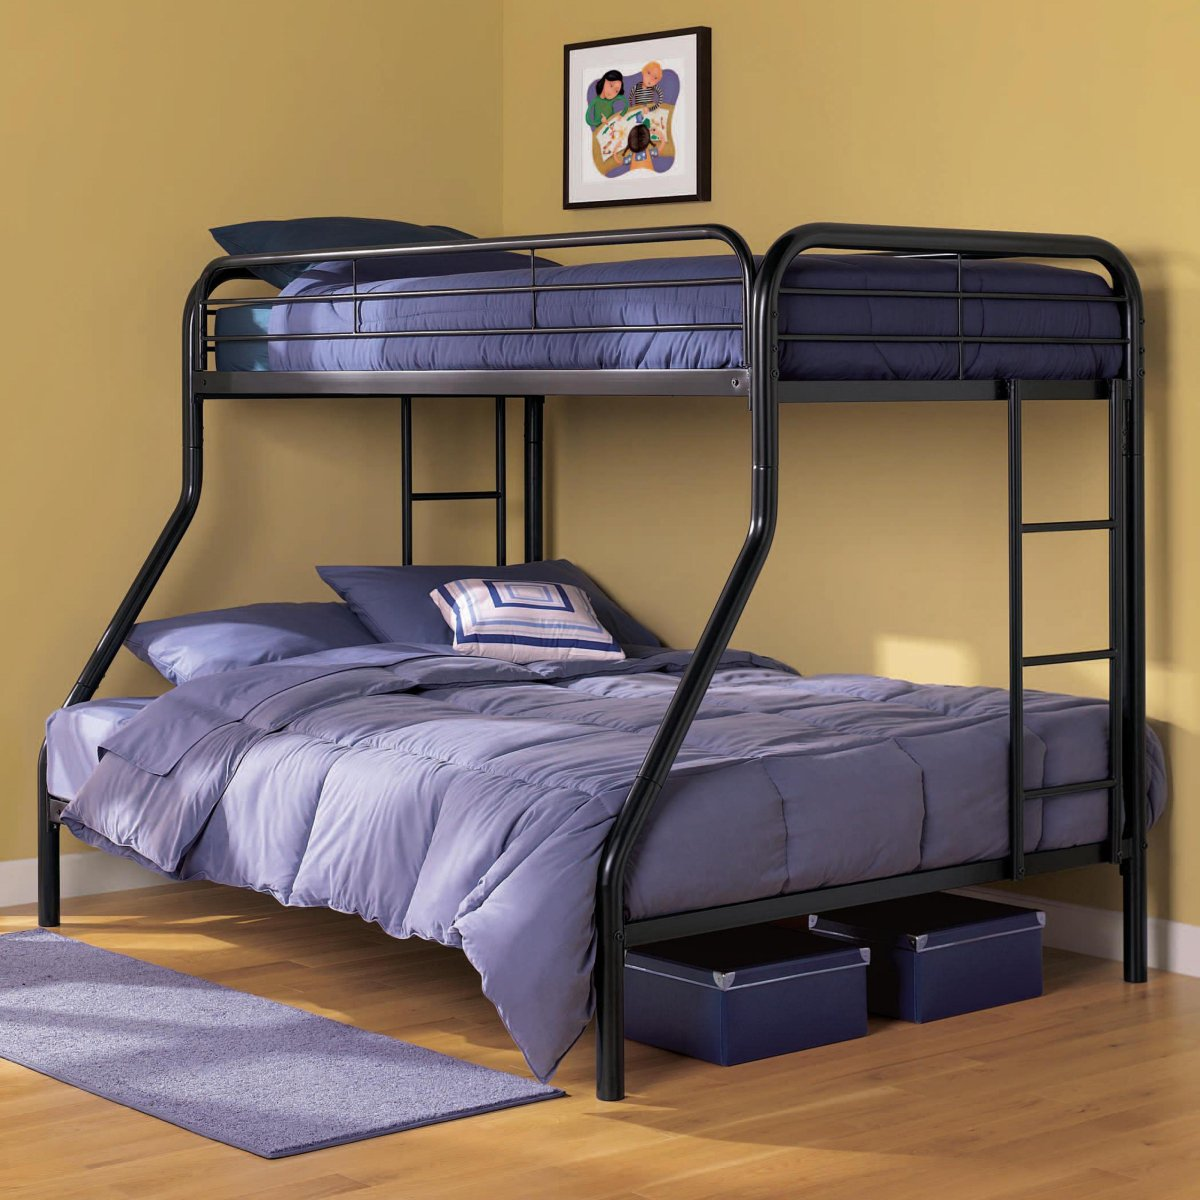 Image of: Toddler Bunk Beds Ikea Size